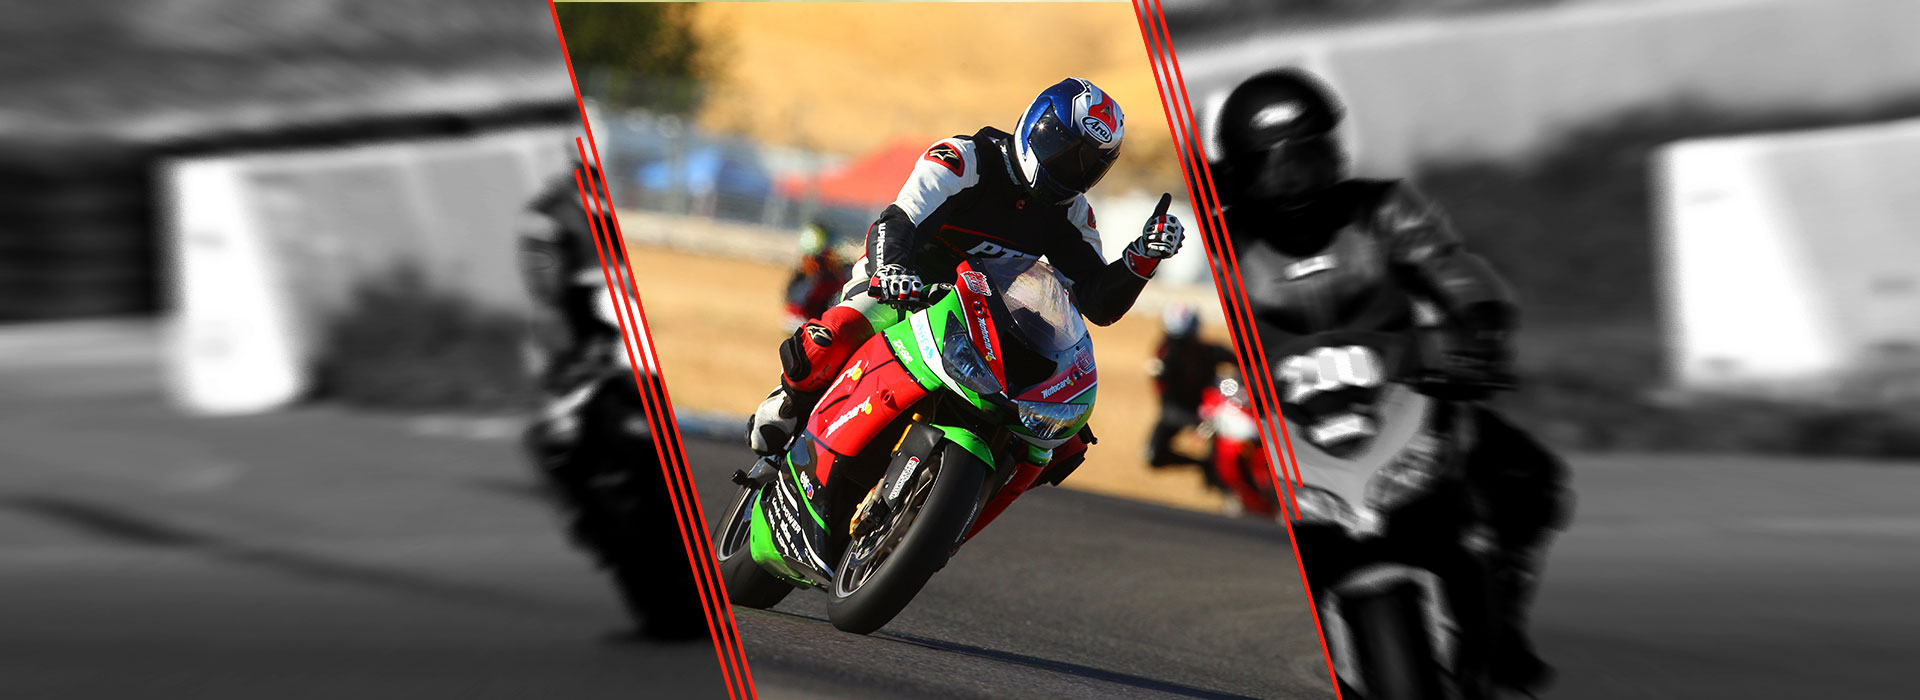 Pacific Track Time - Leading Provider in Motorcycle Track Days - Slider 2